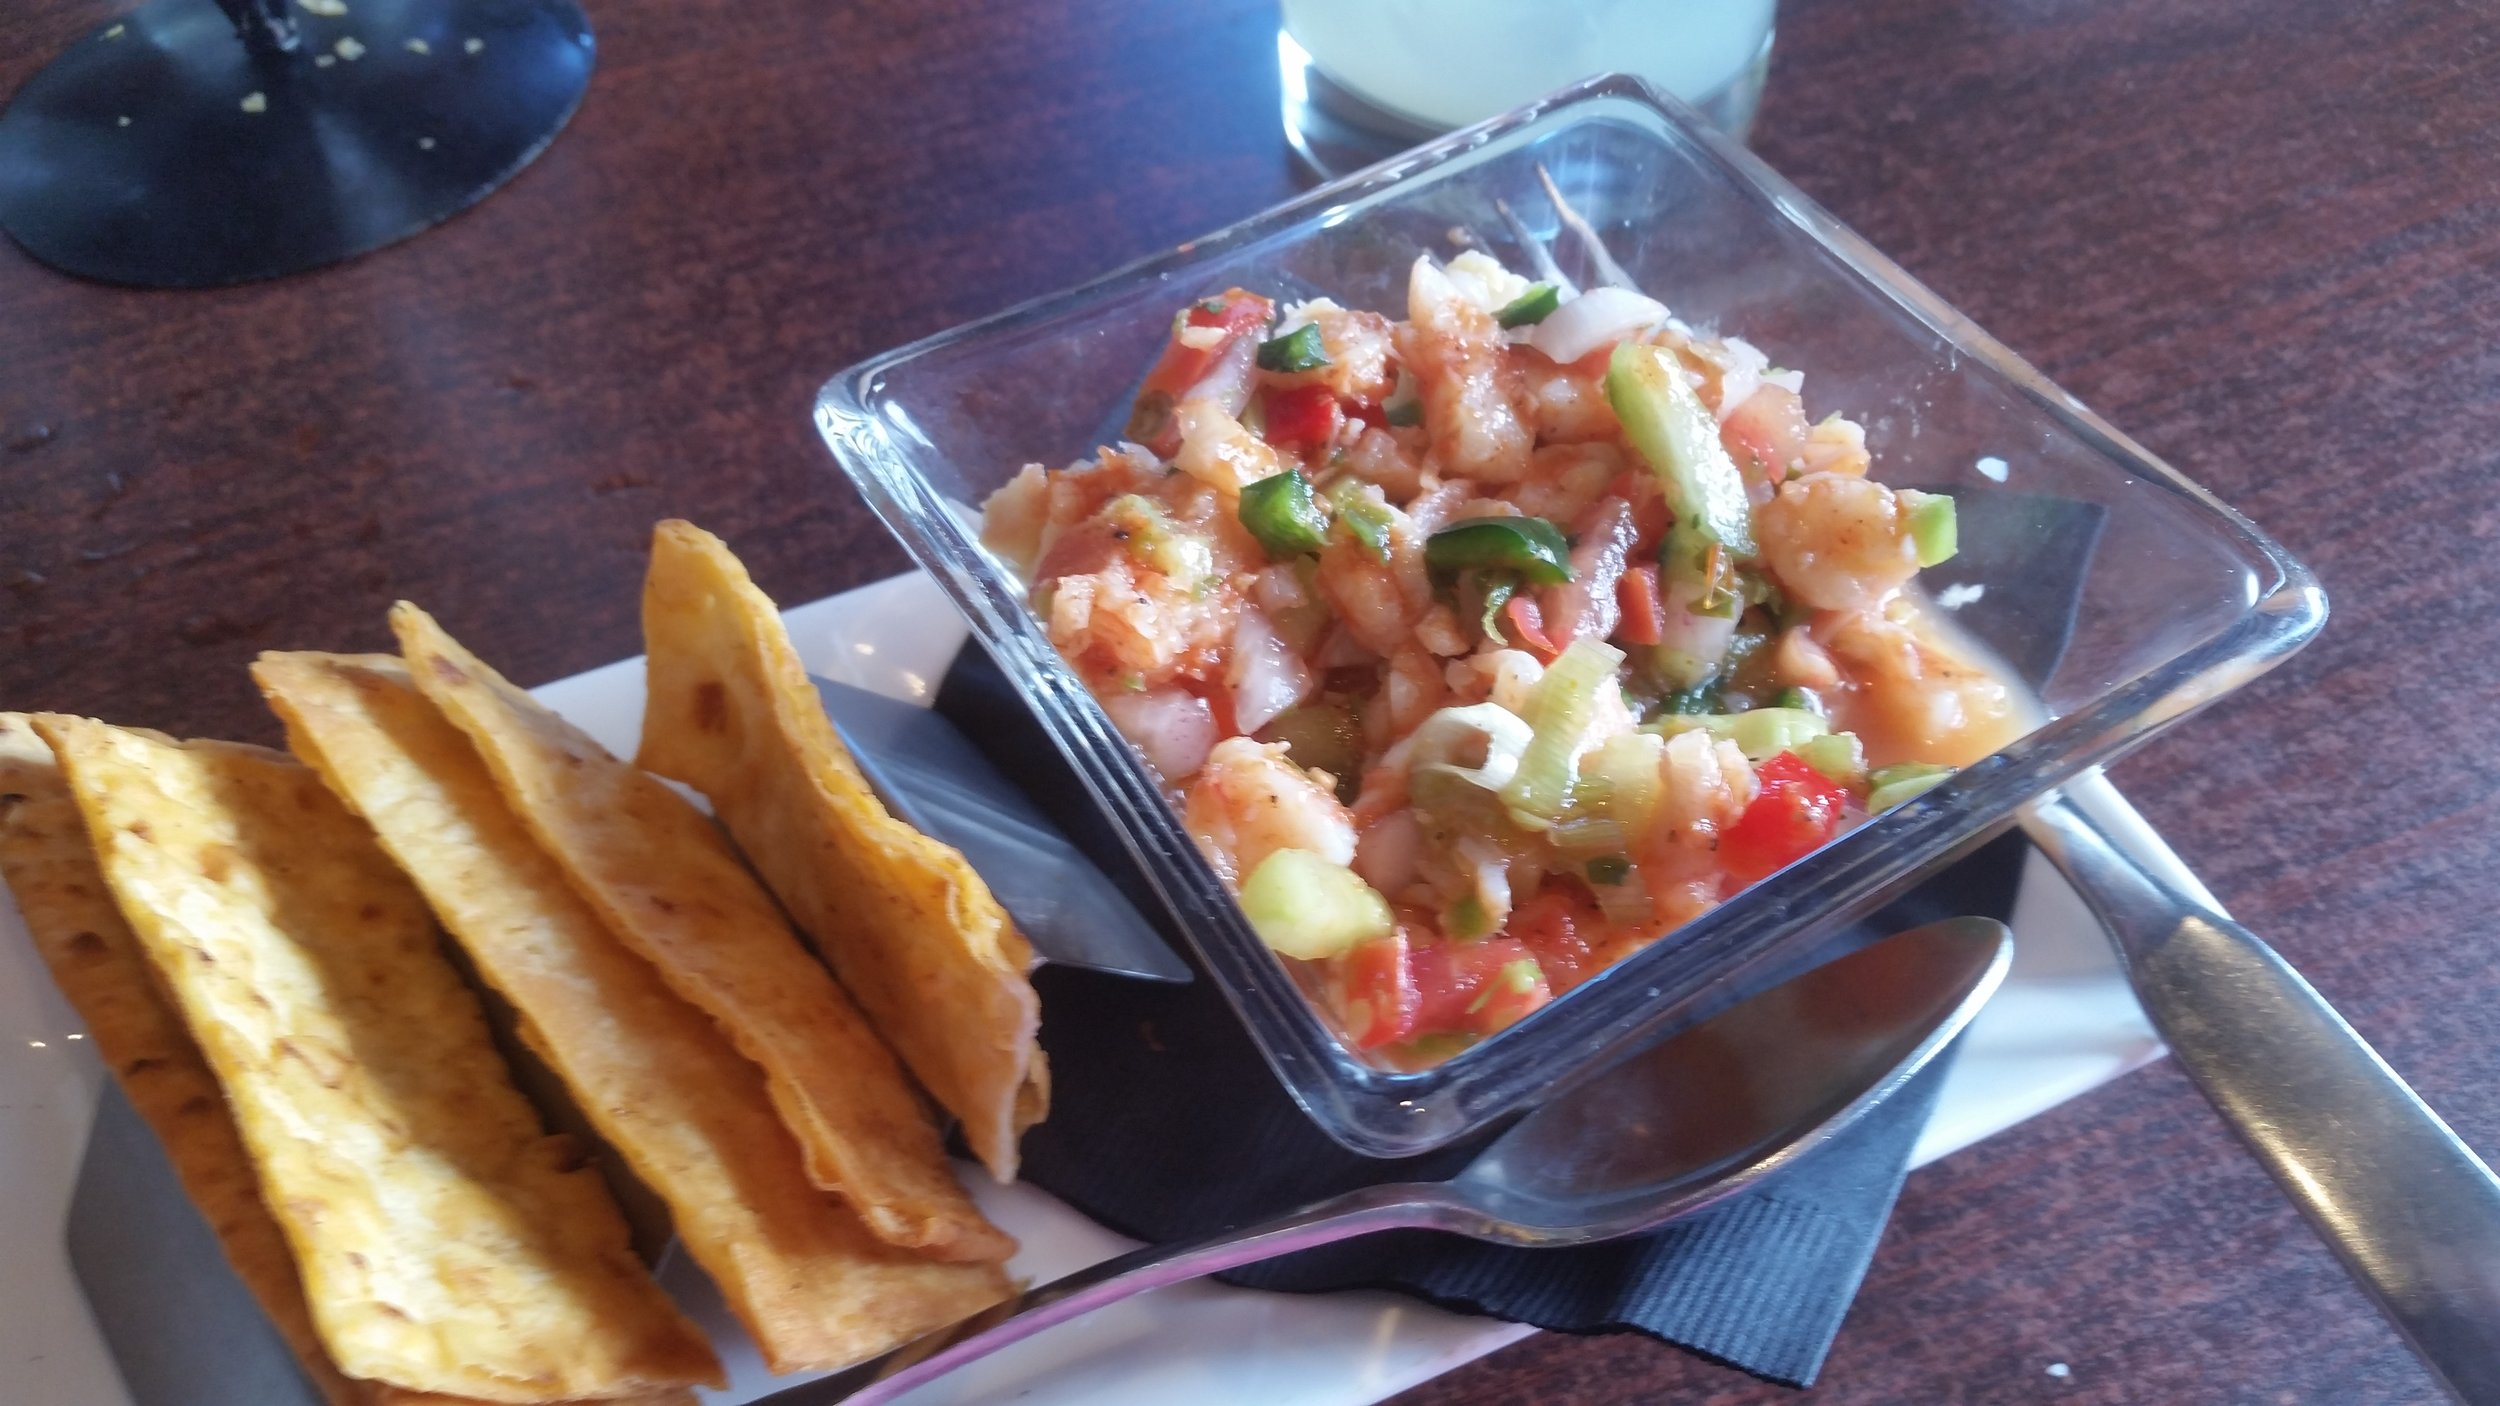 Ceviche at Zacatecas in Albuquerque